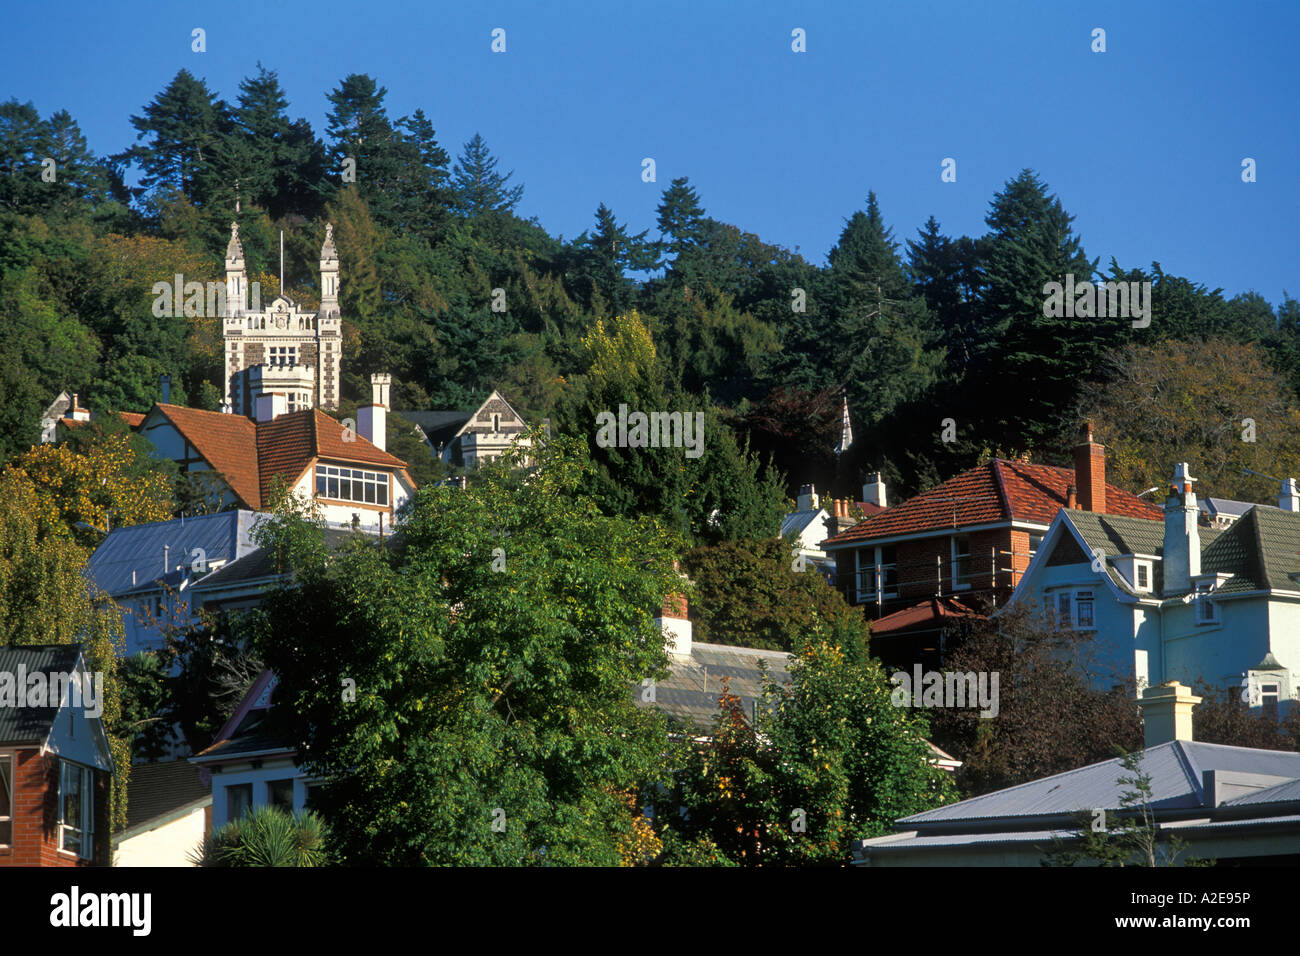 Part of the leafy historic Roslyn district in the hills behind the city centre of Dunedin Otago South Island New - Stock Image